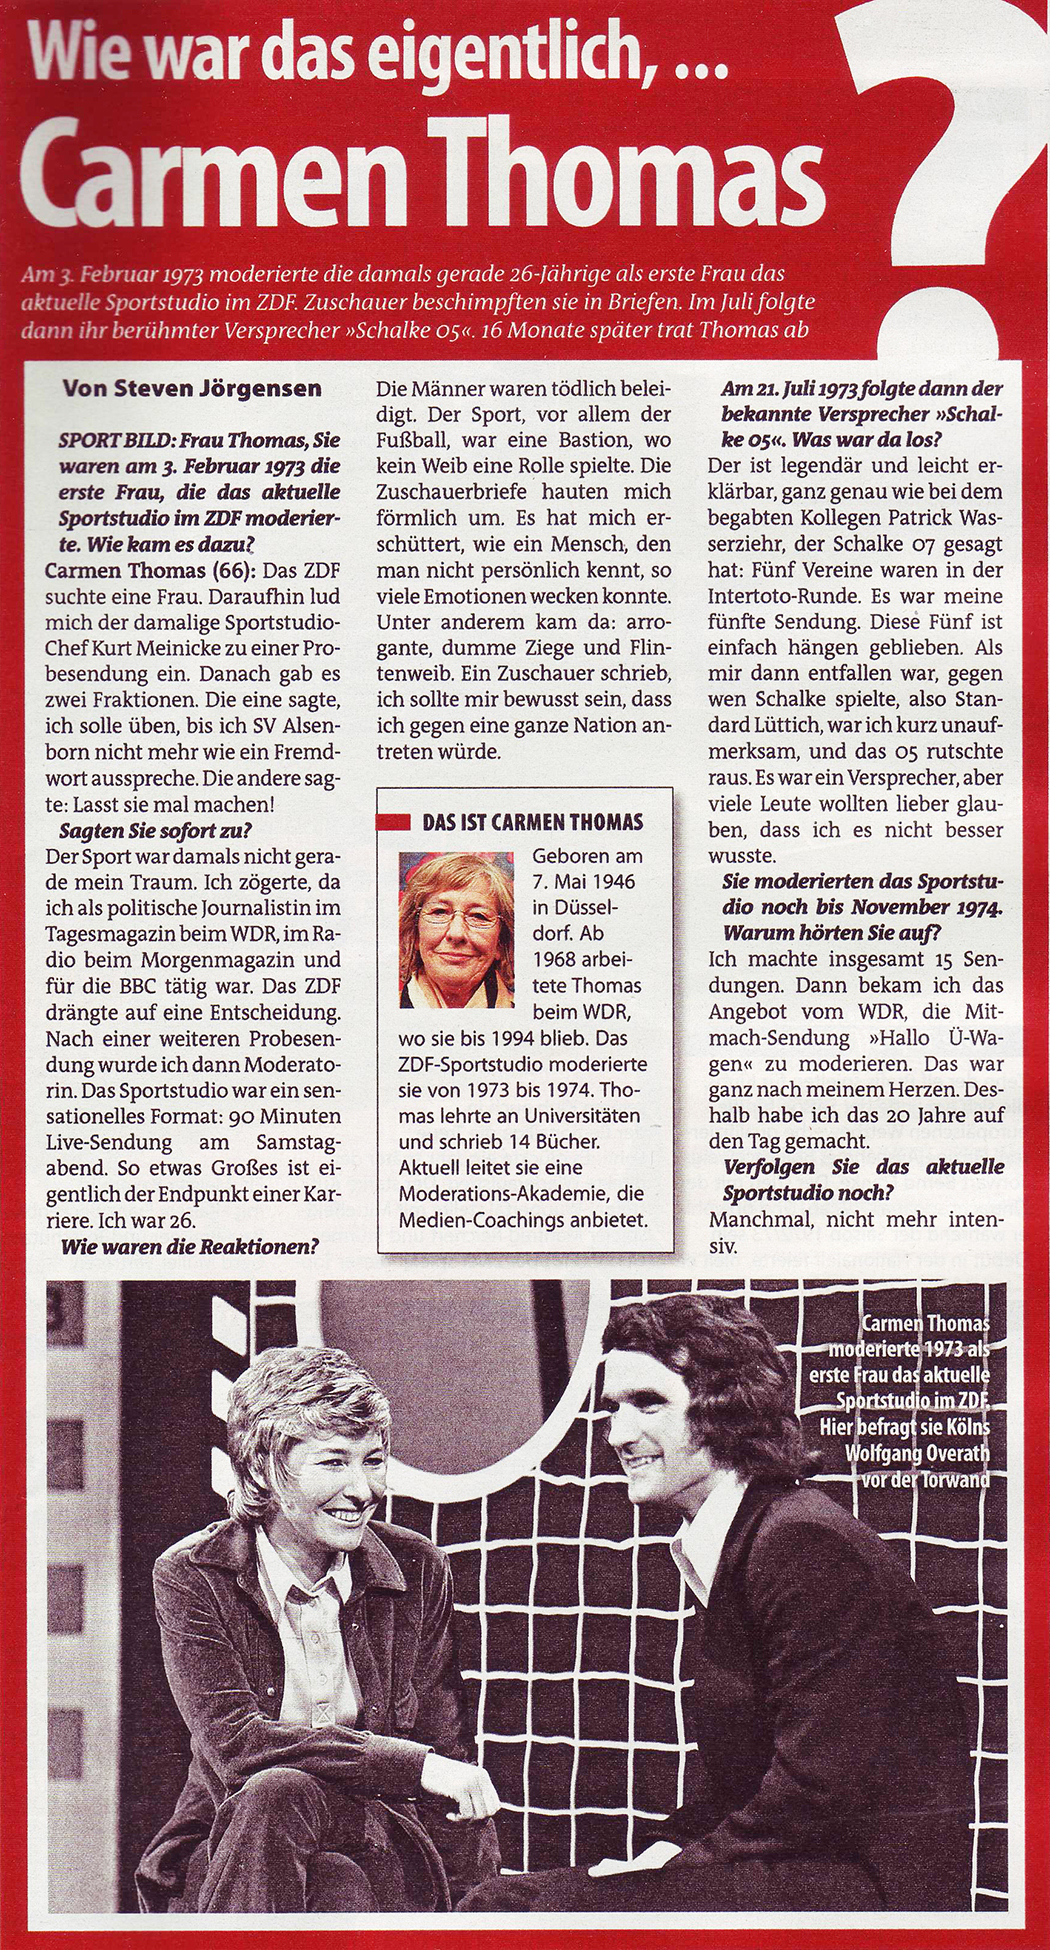 Carmen-Thomas-in-SportBild-vom-24.-April-2013